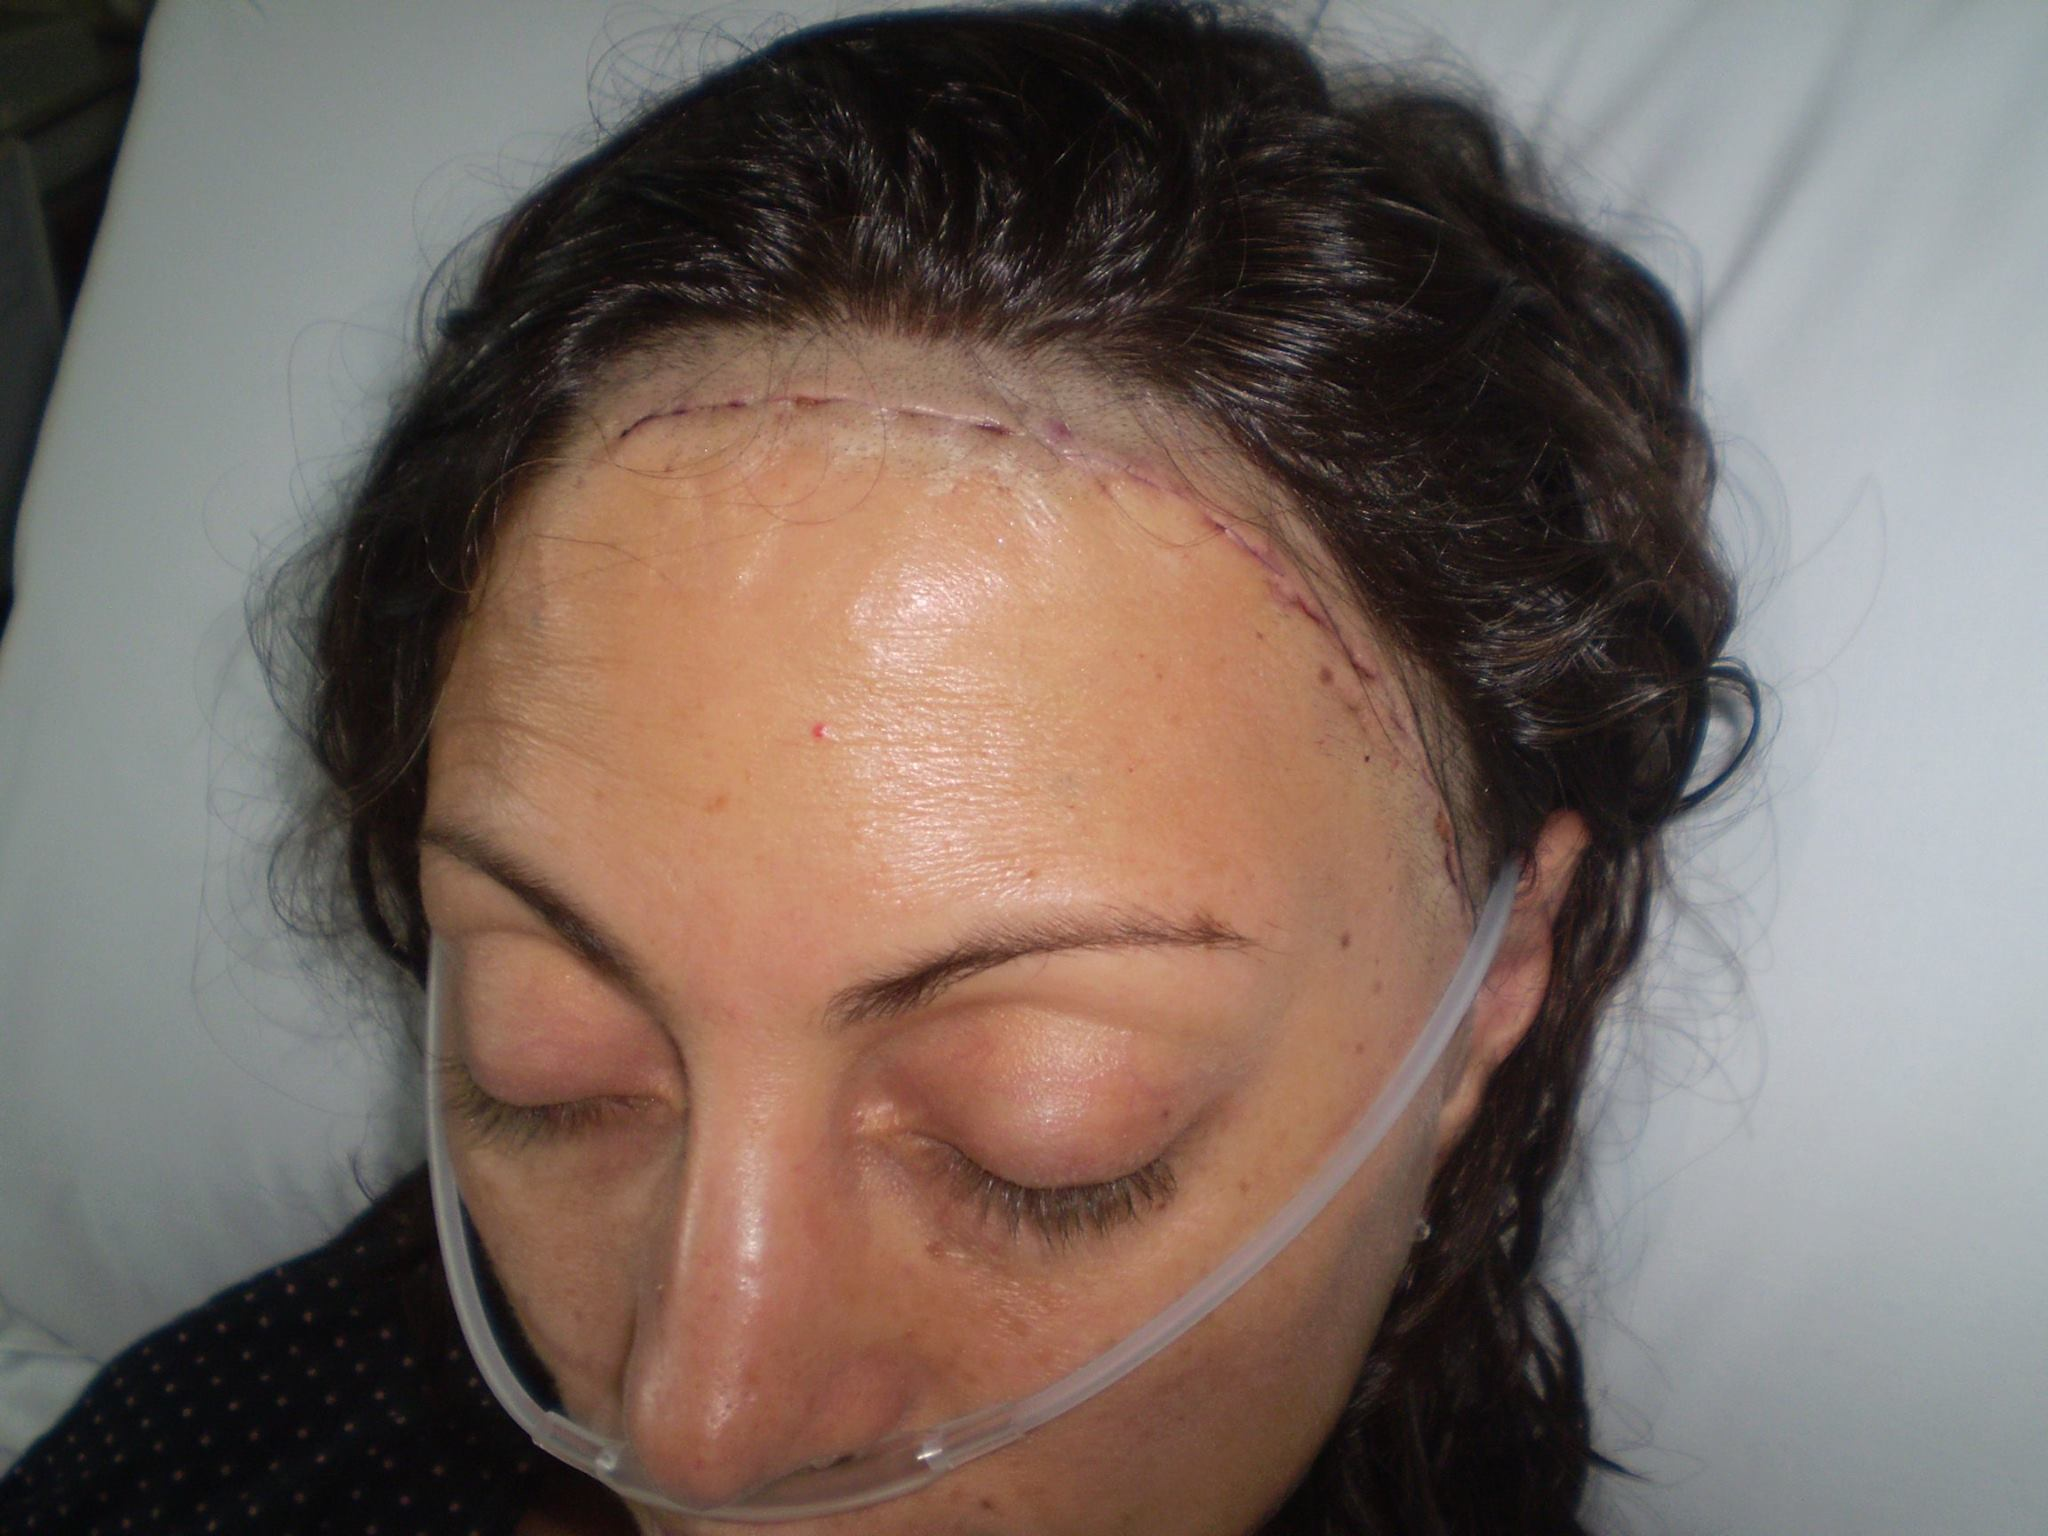 Recovering from cranial surgery, 2010.